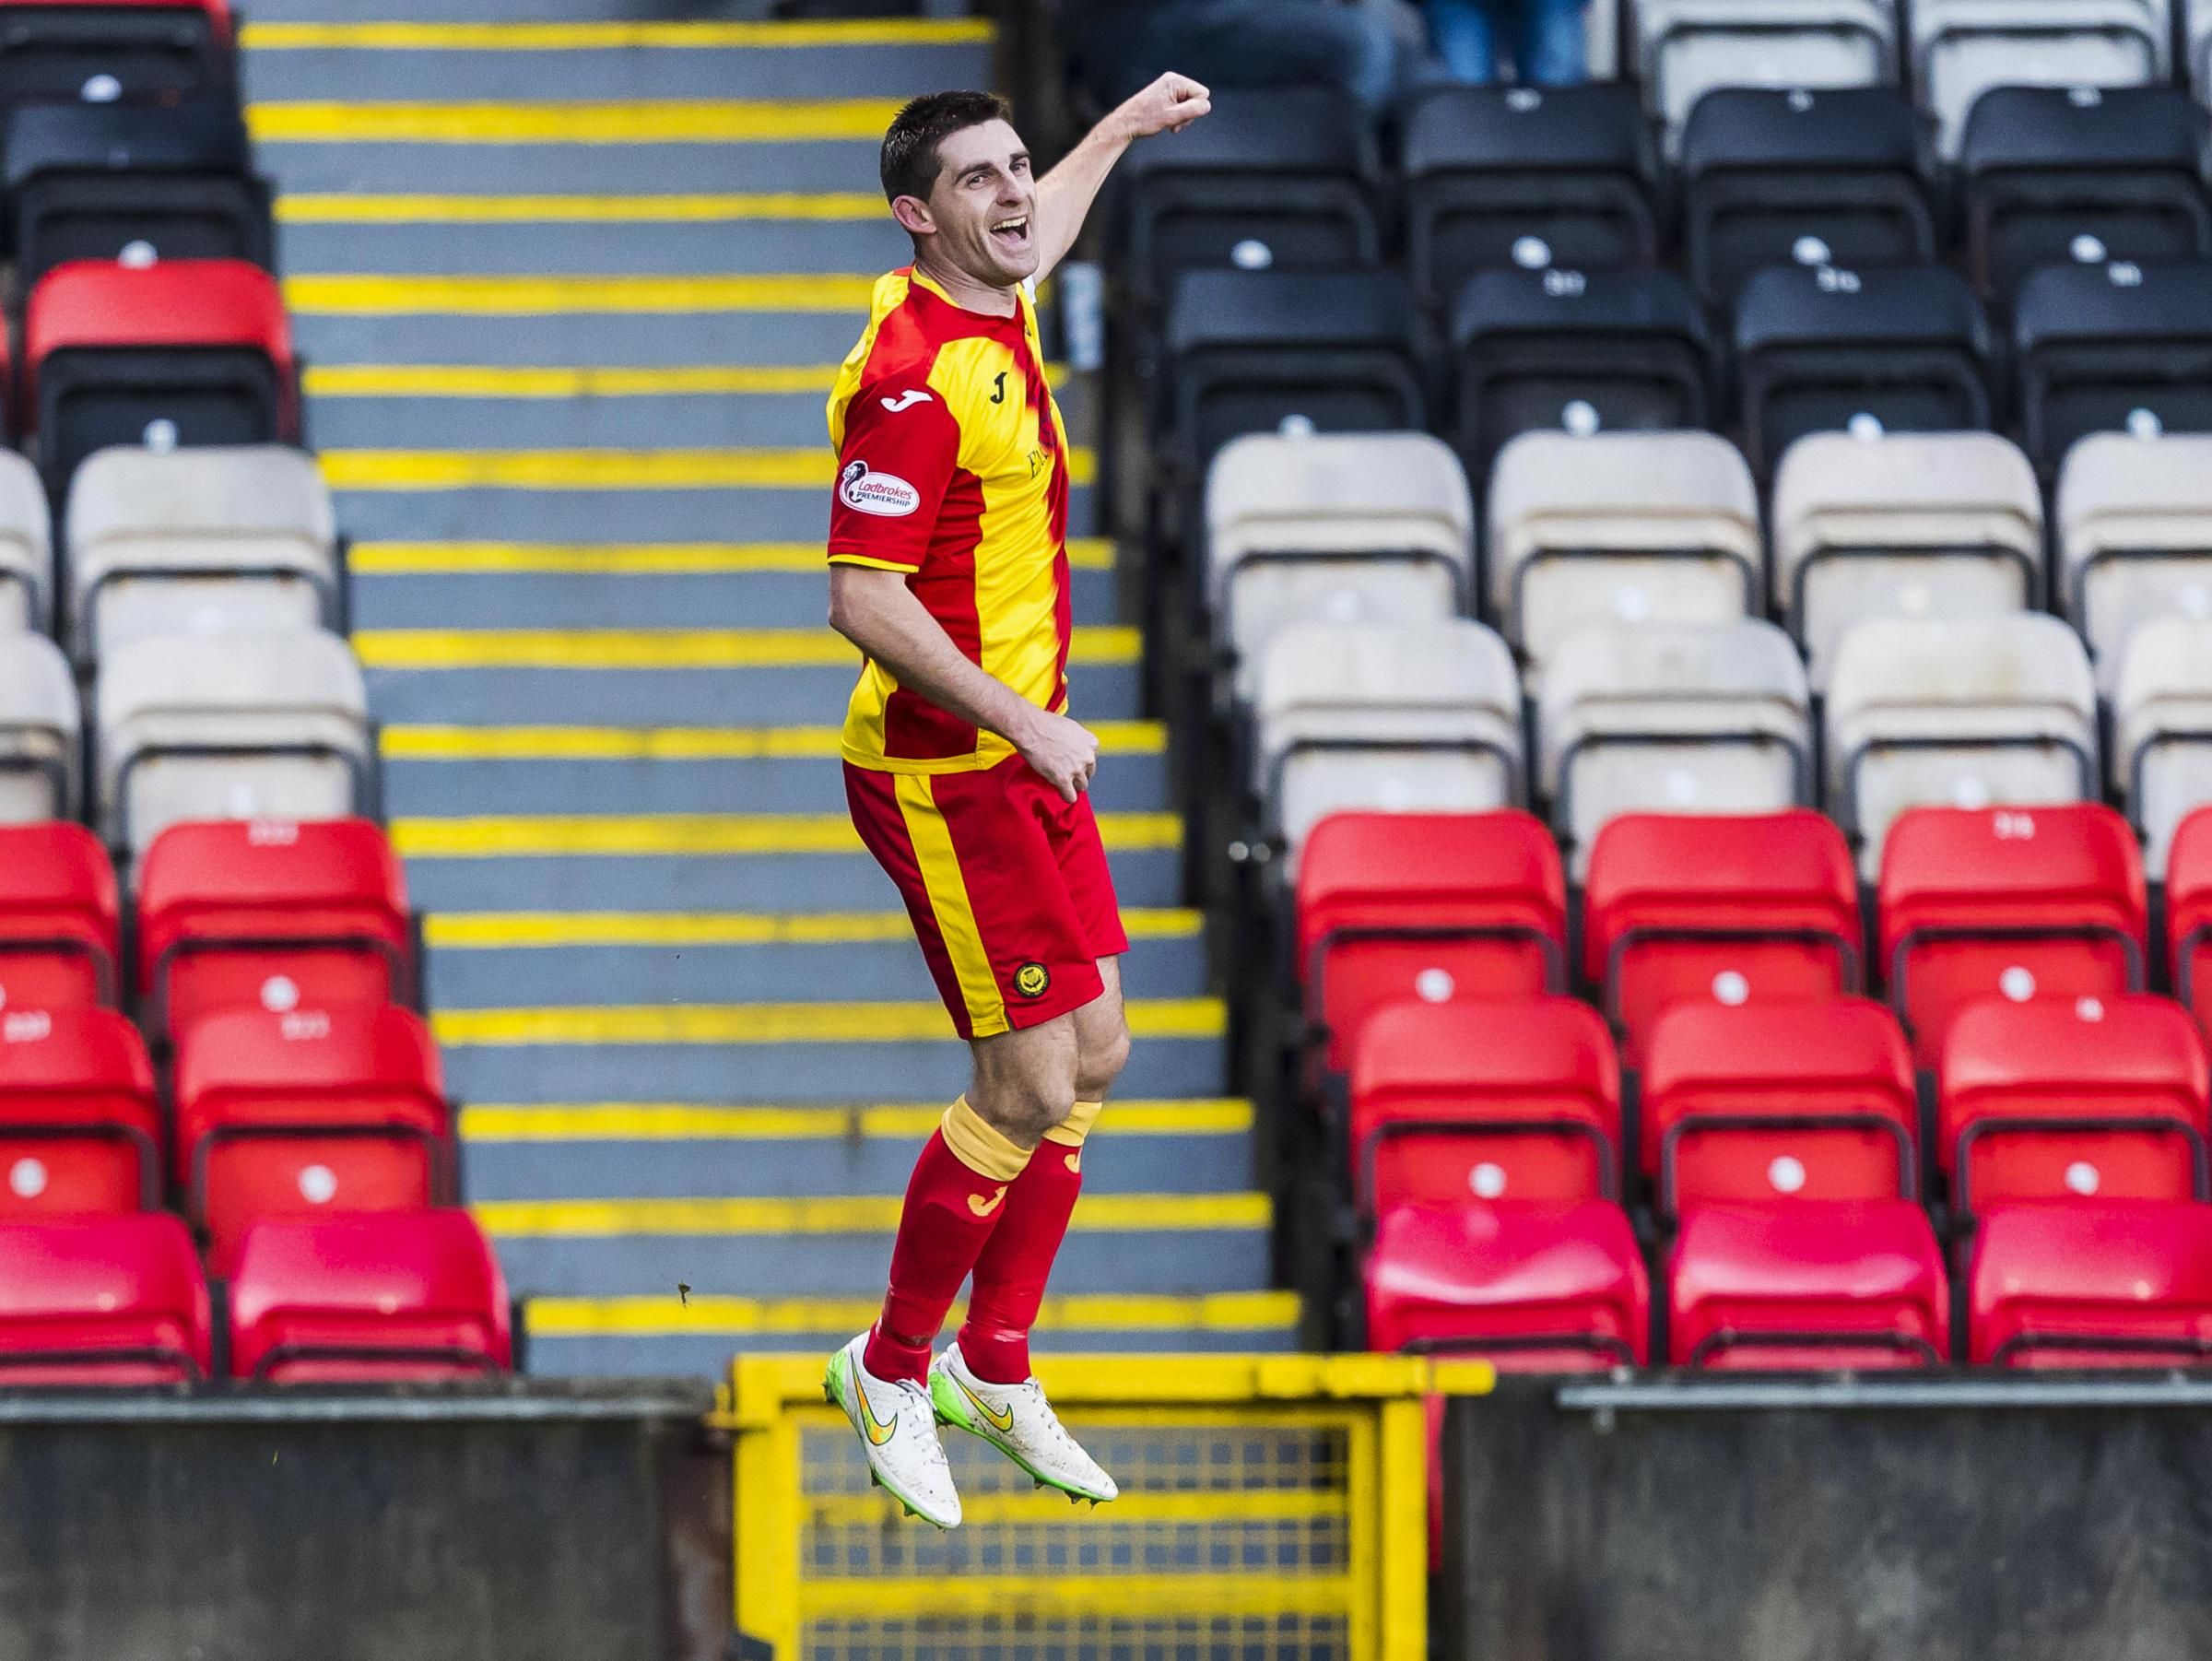 Kris Doolan celebrates his latest goal for Partick Thistle in the 2-0 win over Ross County recently.